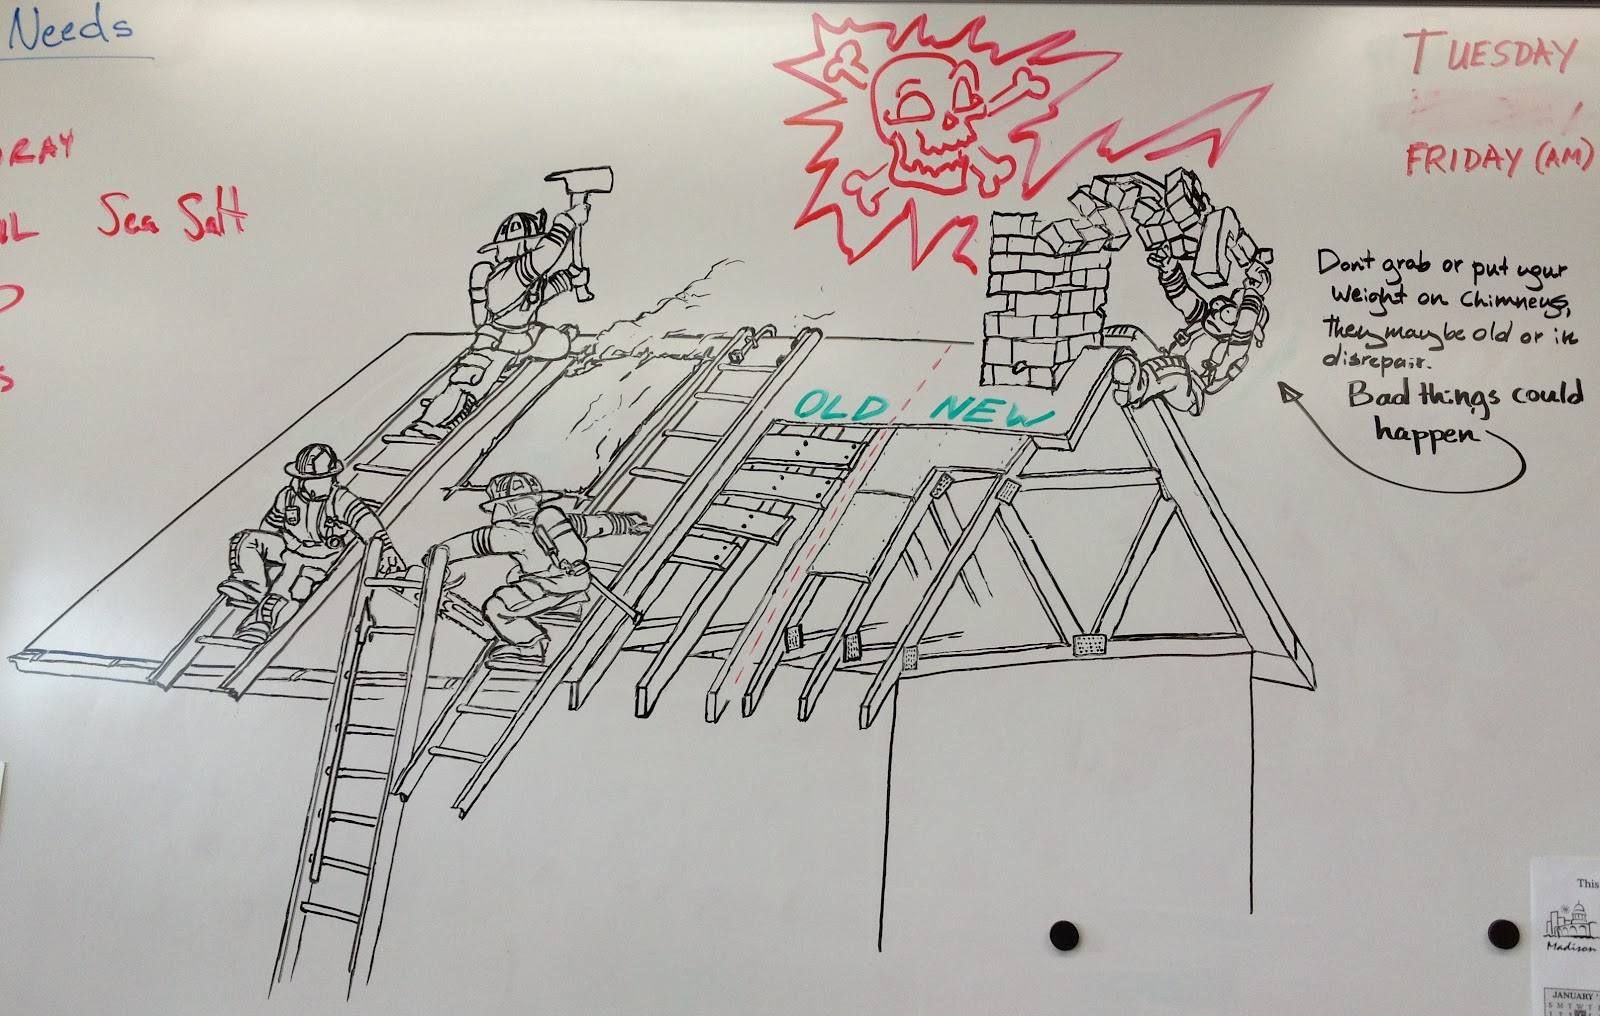 Flames in the smoke for Stuff to draw on a whiteboard